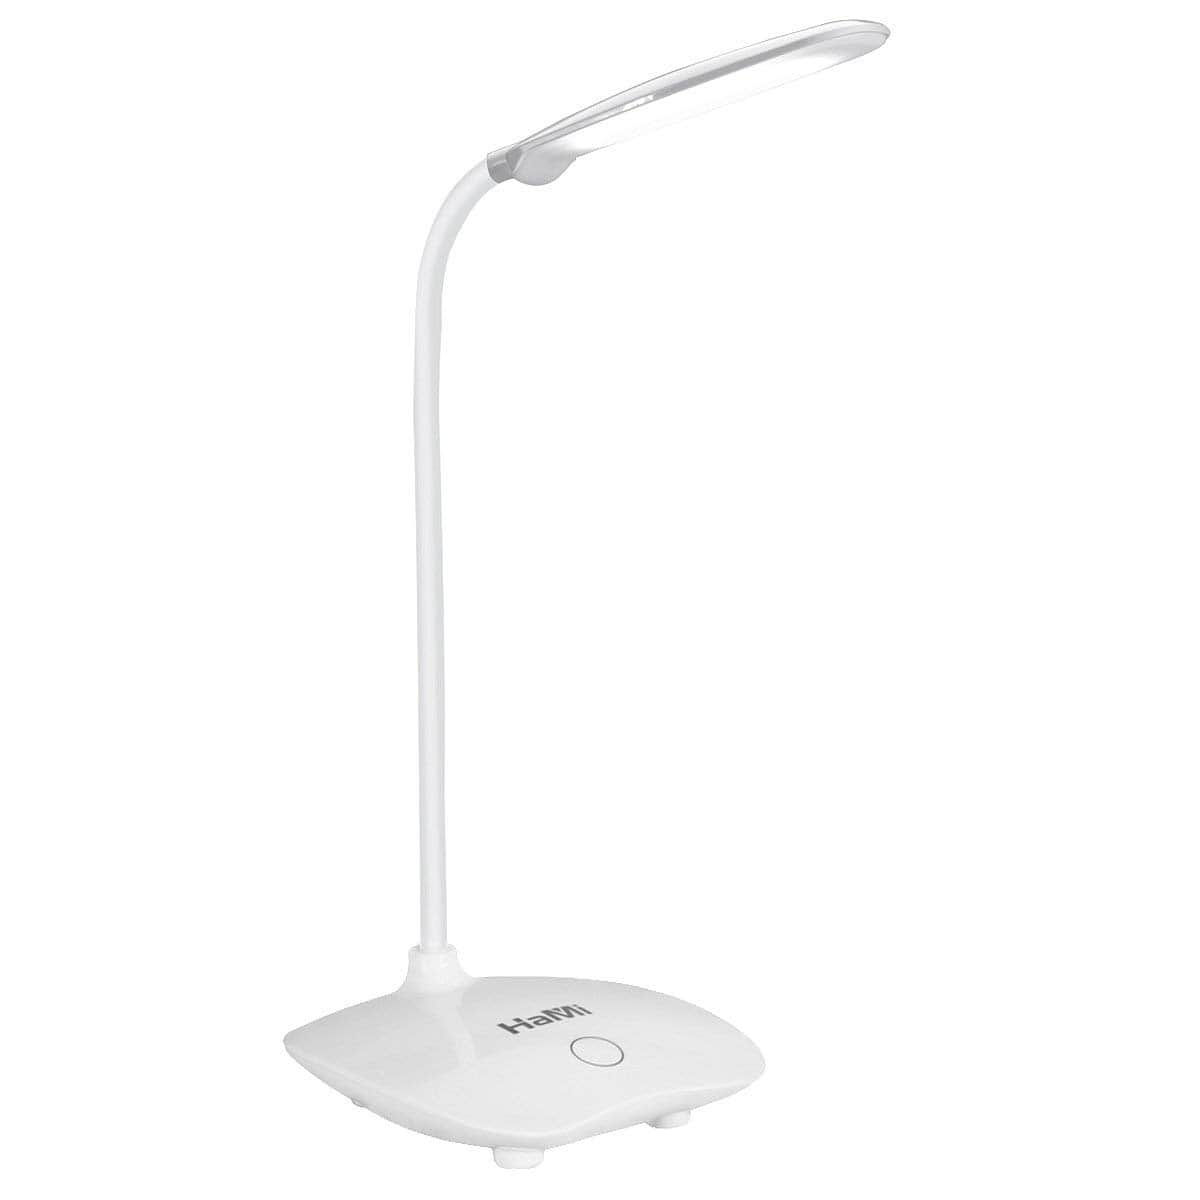 HaMi 5W 18-LED Cordless Desk Lamp @Amazon $6.24